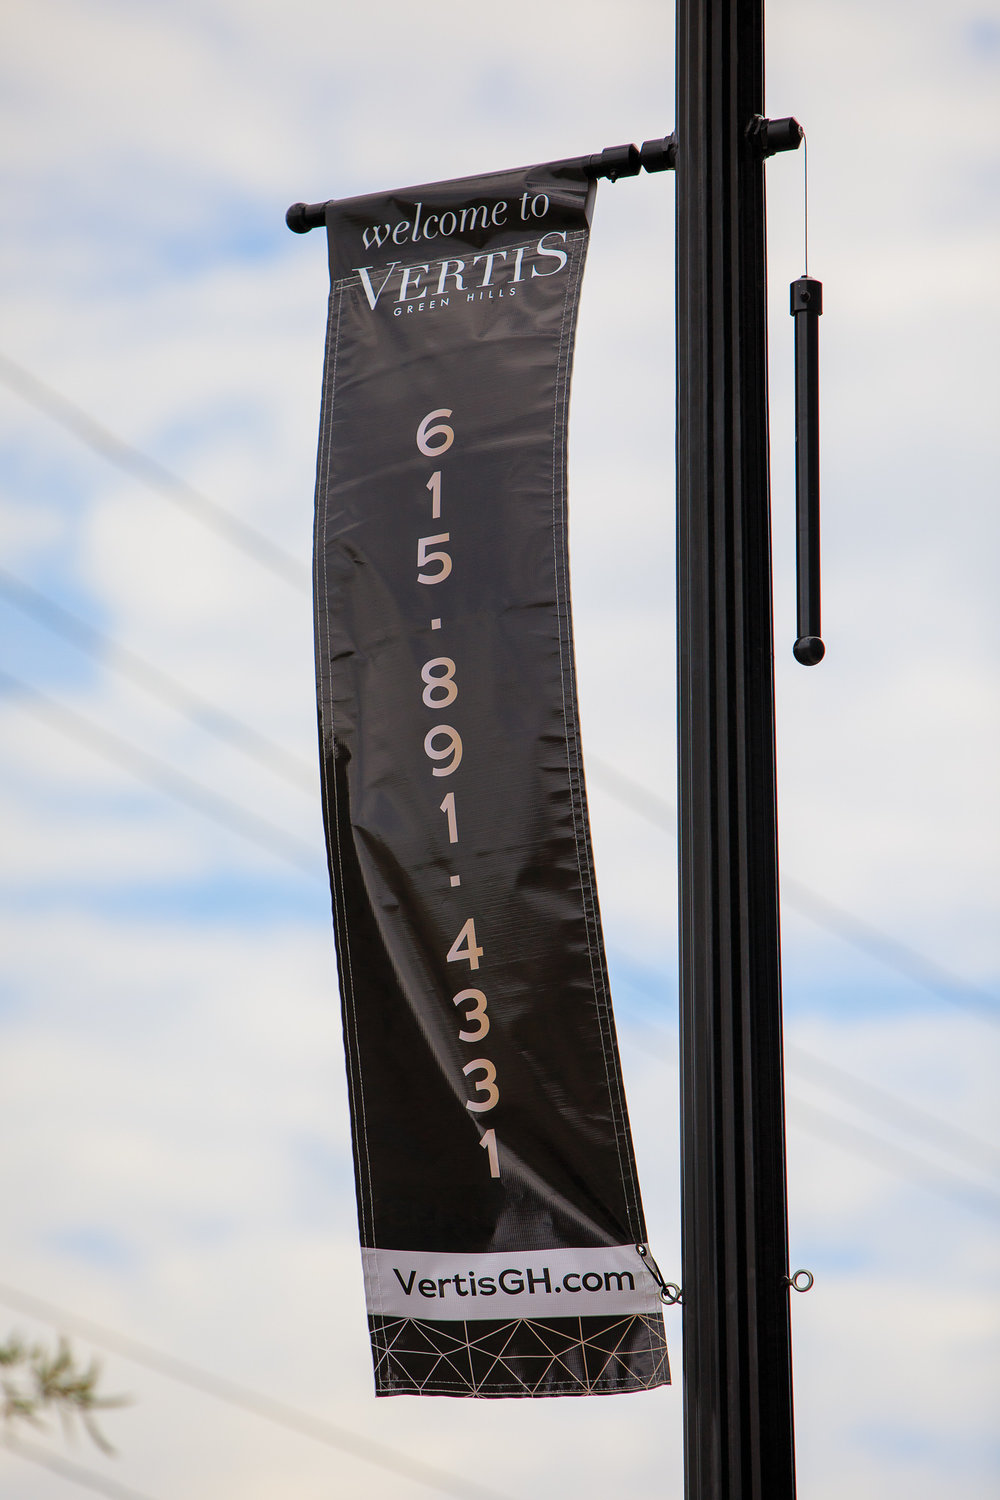 Vertis-Green-Hills_brand-identity-signage_pole-banners__MG_5863_small 2000 px.jpg